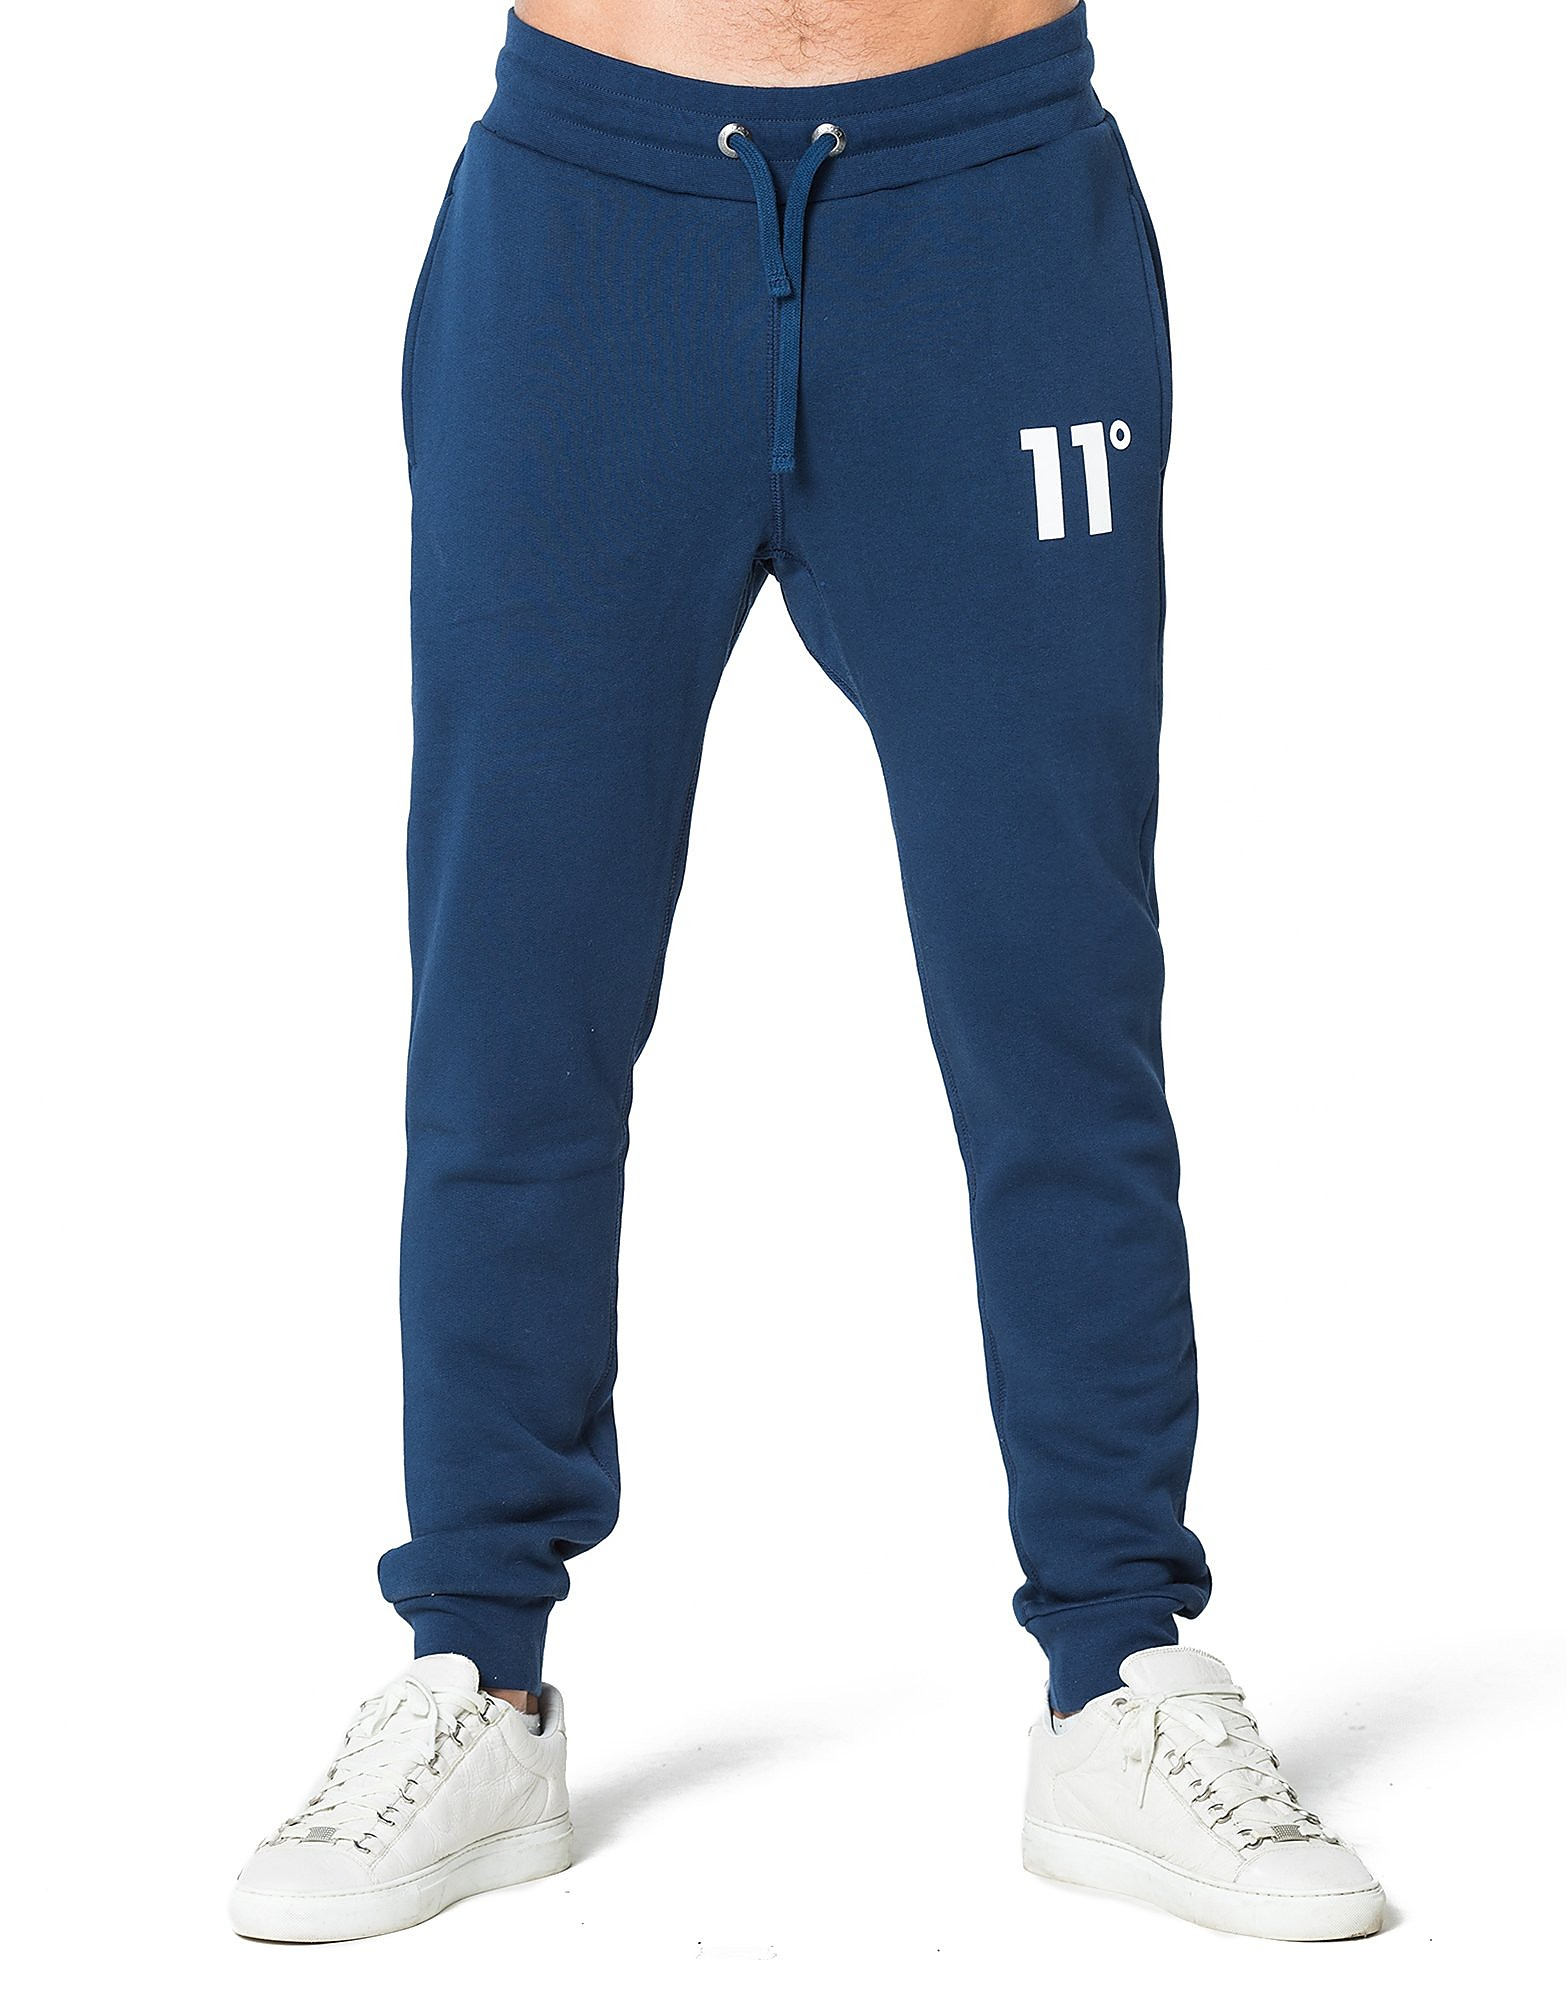 Image de 11 Degrees Pantalon Core Fleece Homme - Navy, Navy